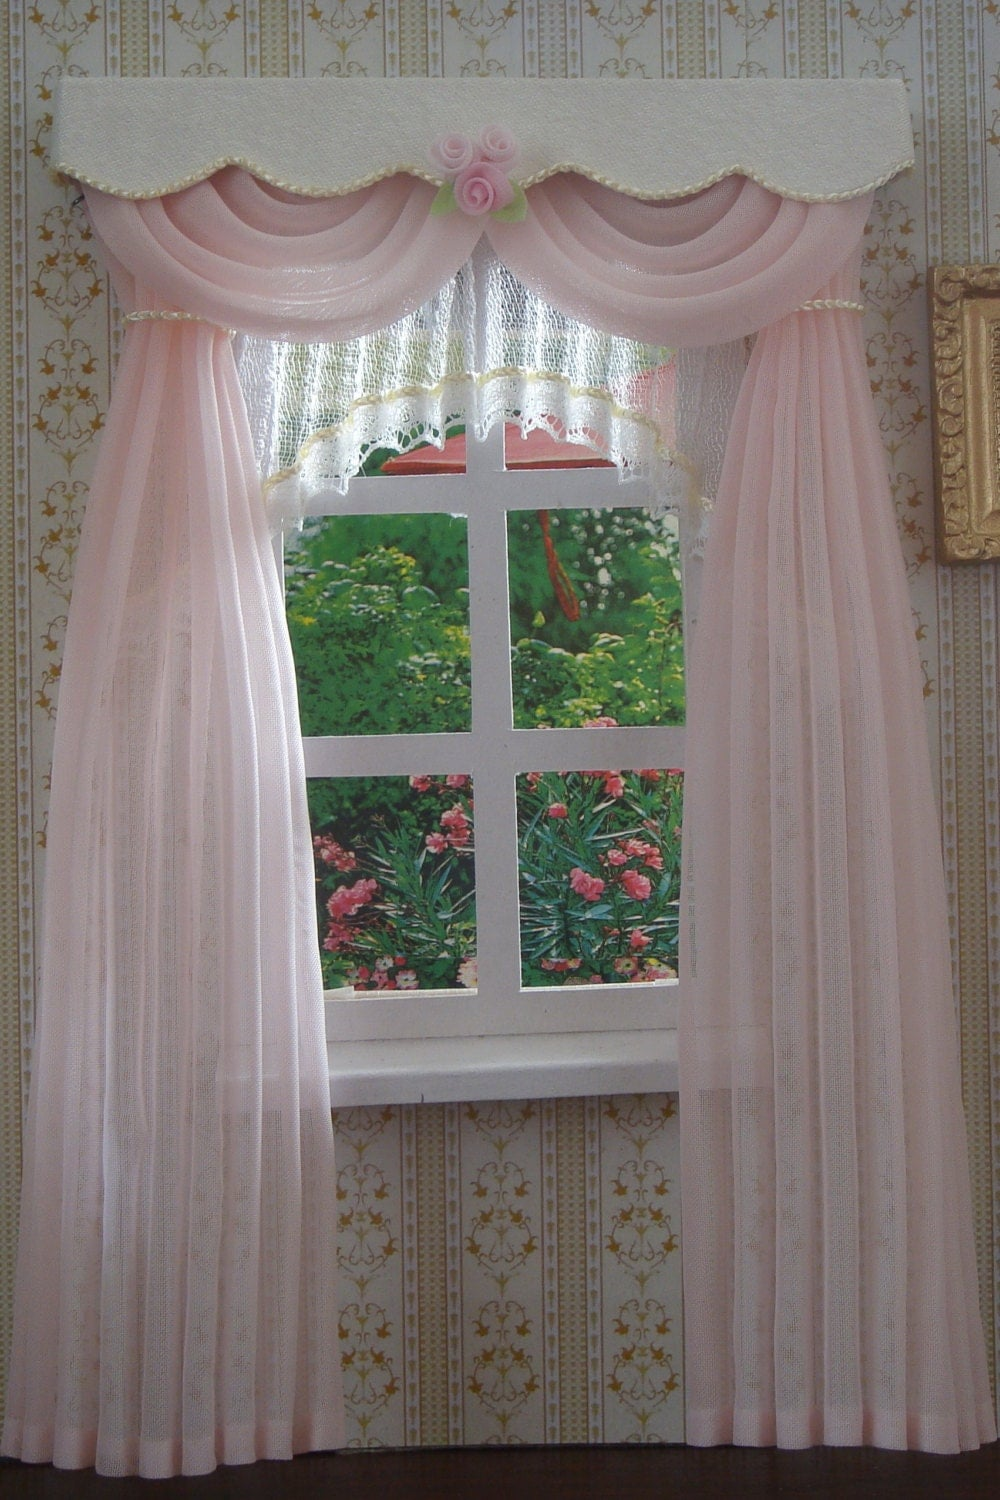 miniature 1 12 dollhouse curtains. Black Bedroom Furniture Sets. Home Design Ideas